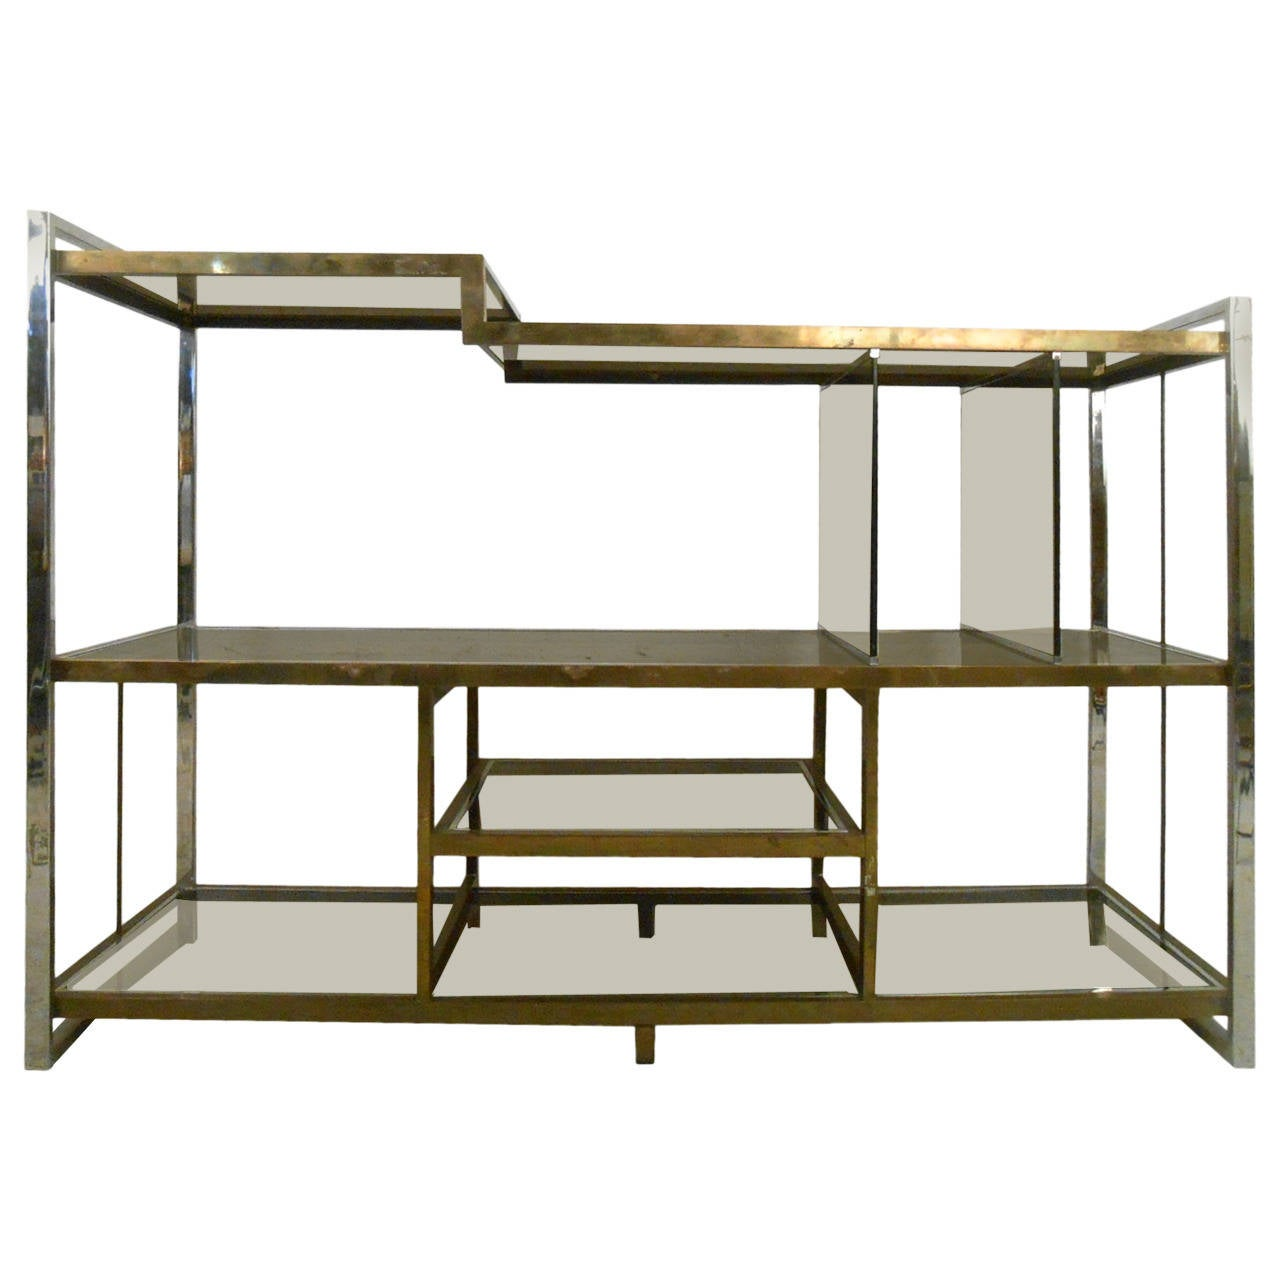 #5D4A21 Mid Century Modern Milo Baughman Chrome Brass And Glass Low Bookshelf  with 1280x1280 px of Recommended Modern Low Bookcase 12801280 save image @ avoidforclosure.info